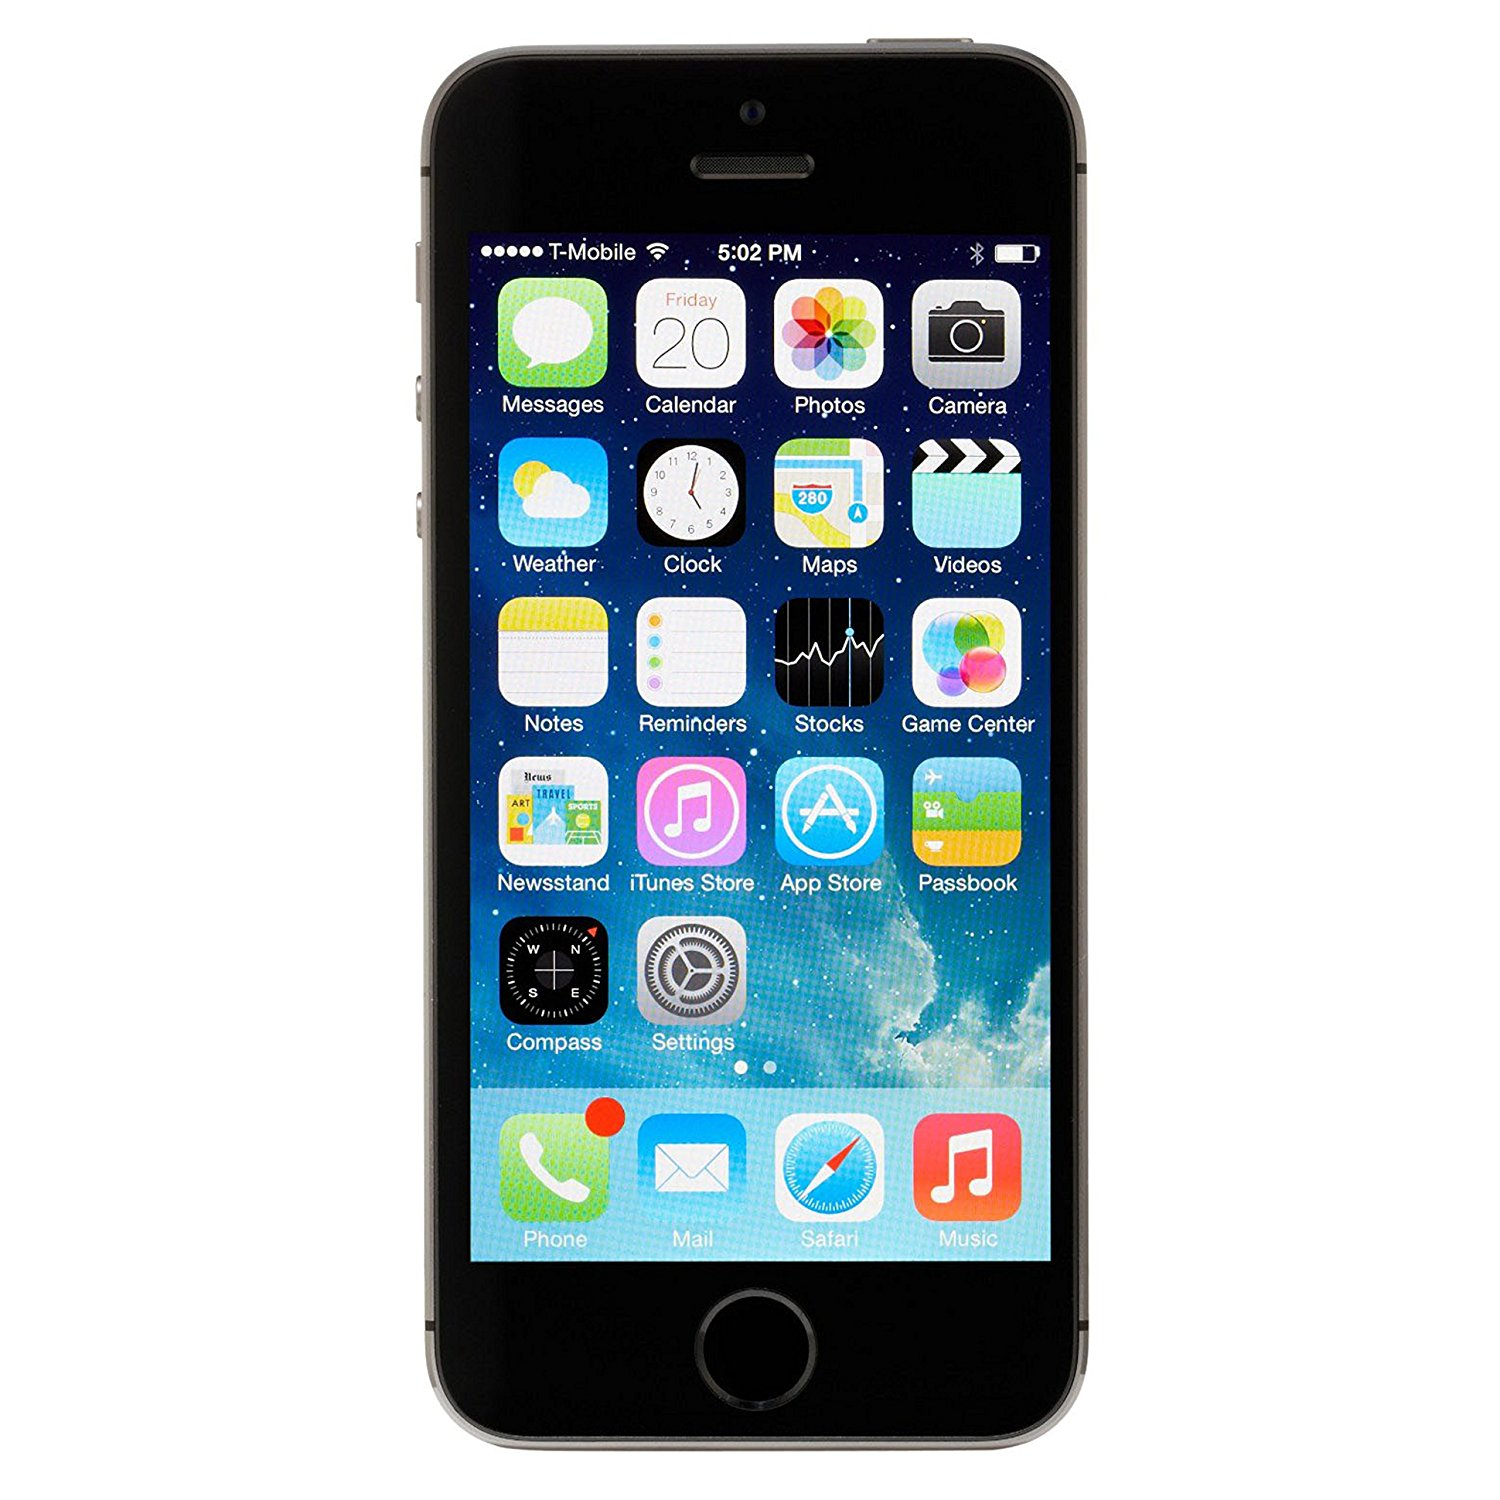 iphone 5s tmobile apple iphone 5s 16gb t mobile smartphone w free fidget 1856